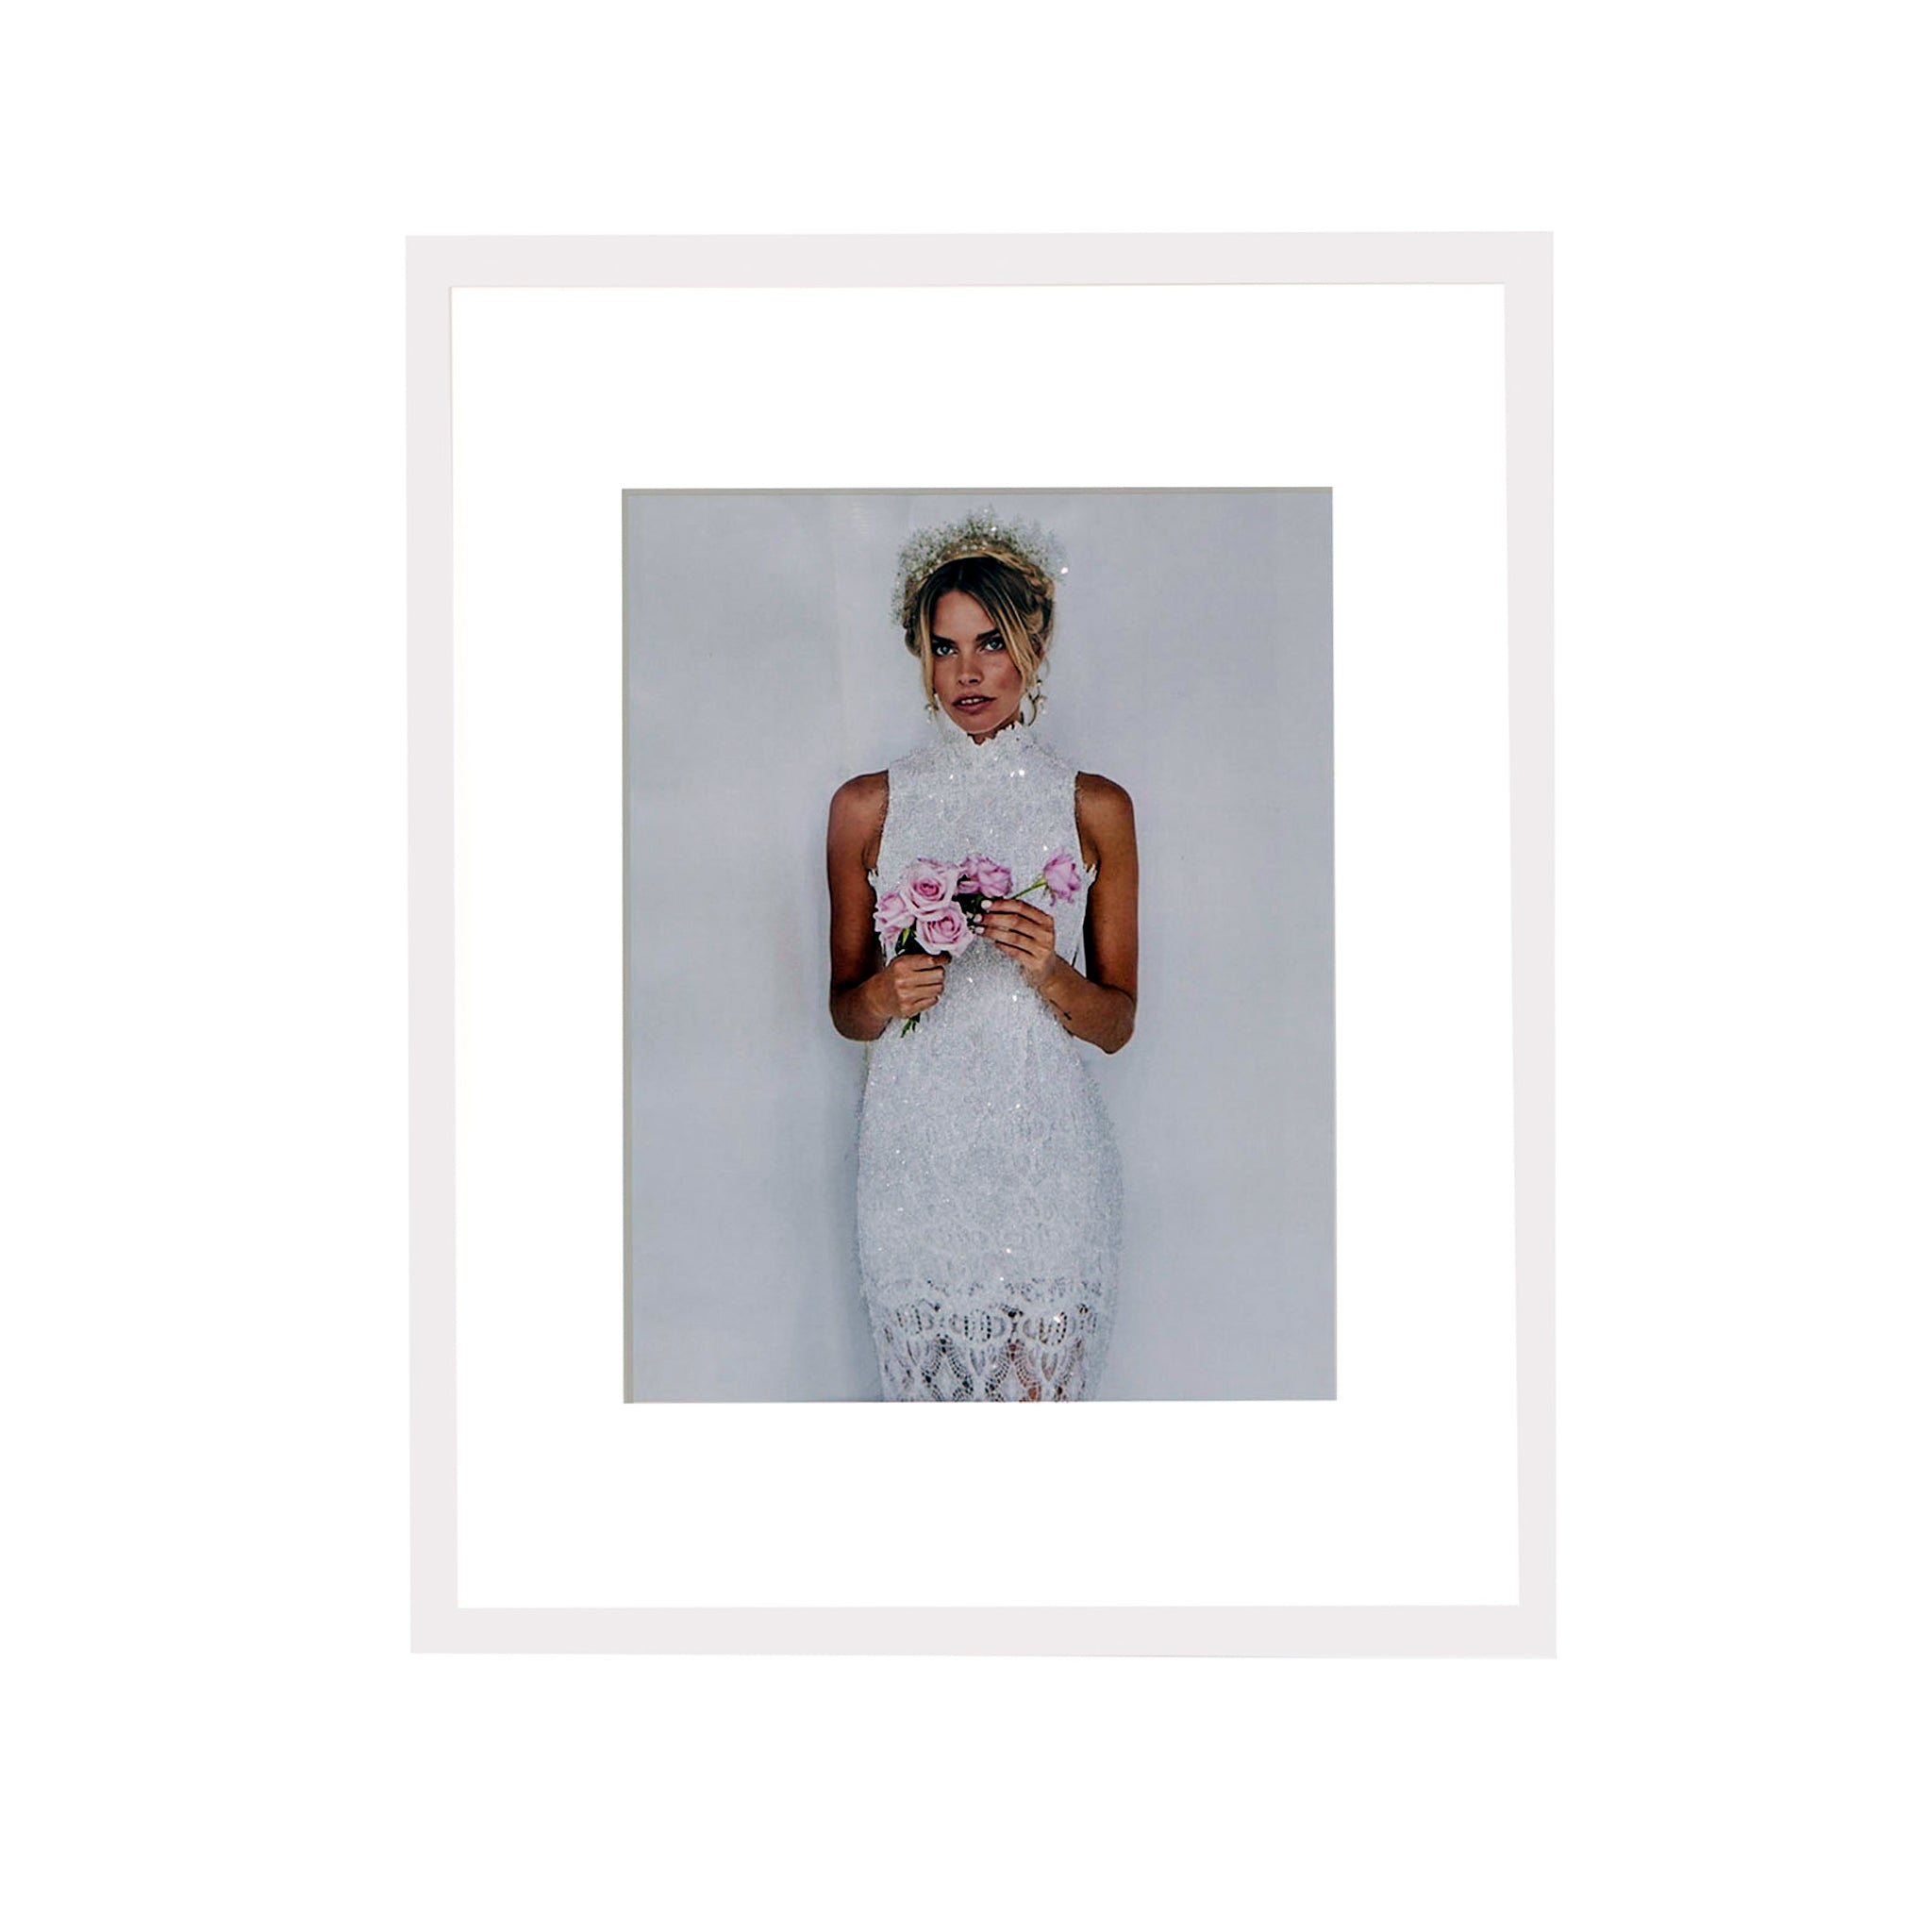 11x14 Diamond Dusted Photo - Matted Frame – Elle New York